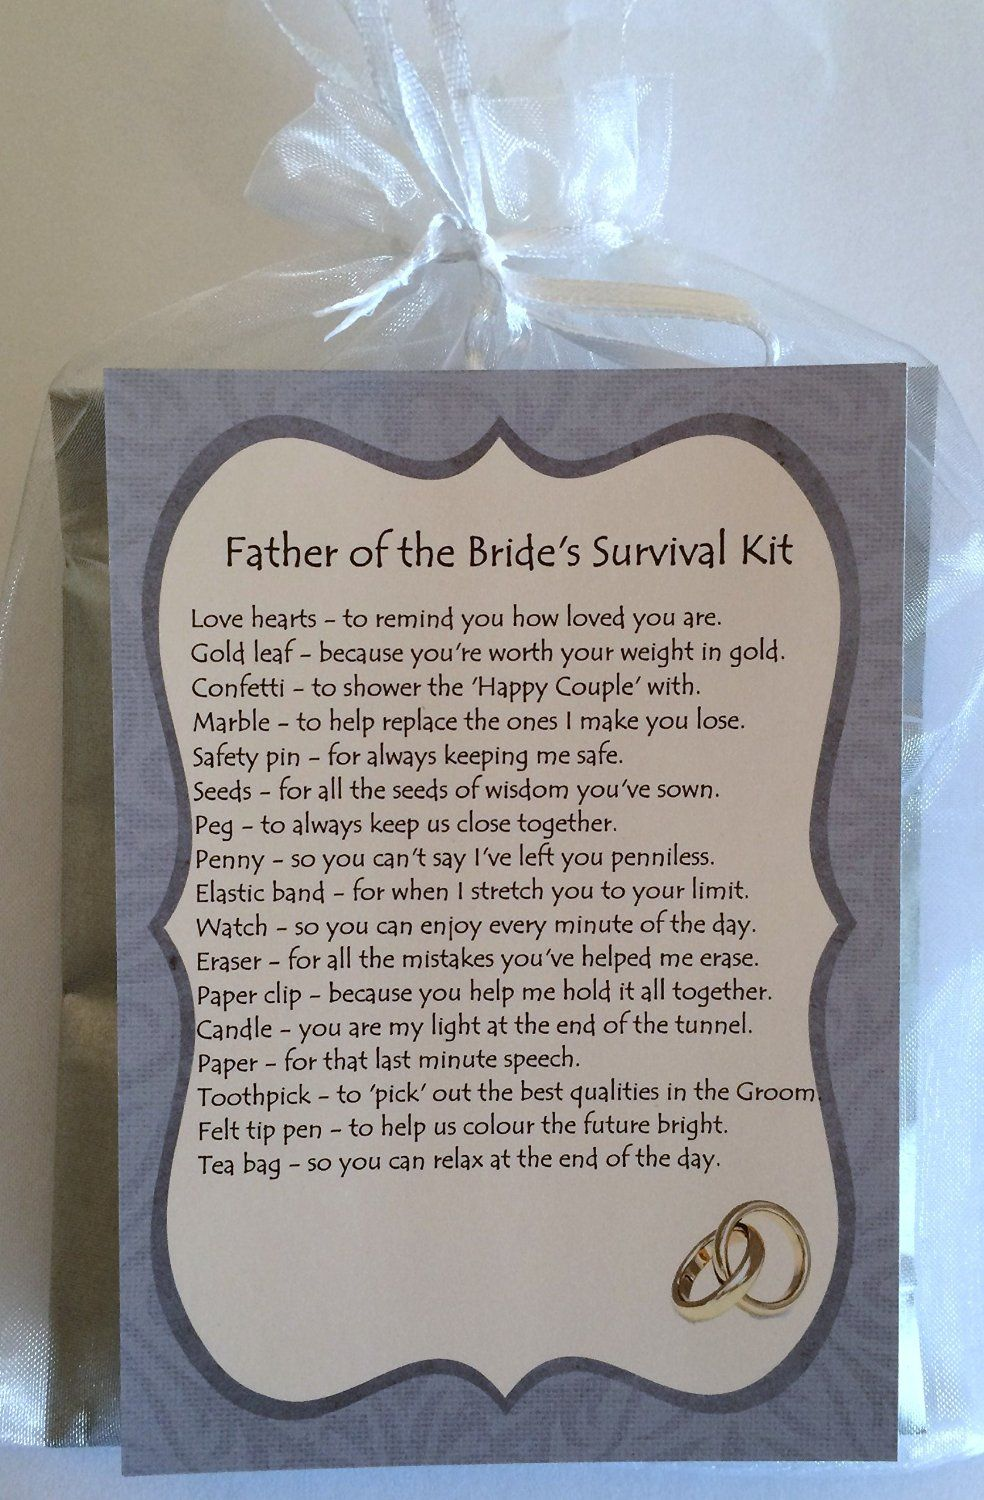 Father of the bride survival kit gift amazoncouk